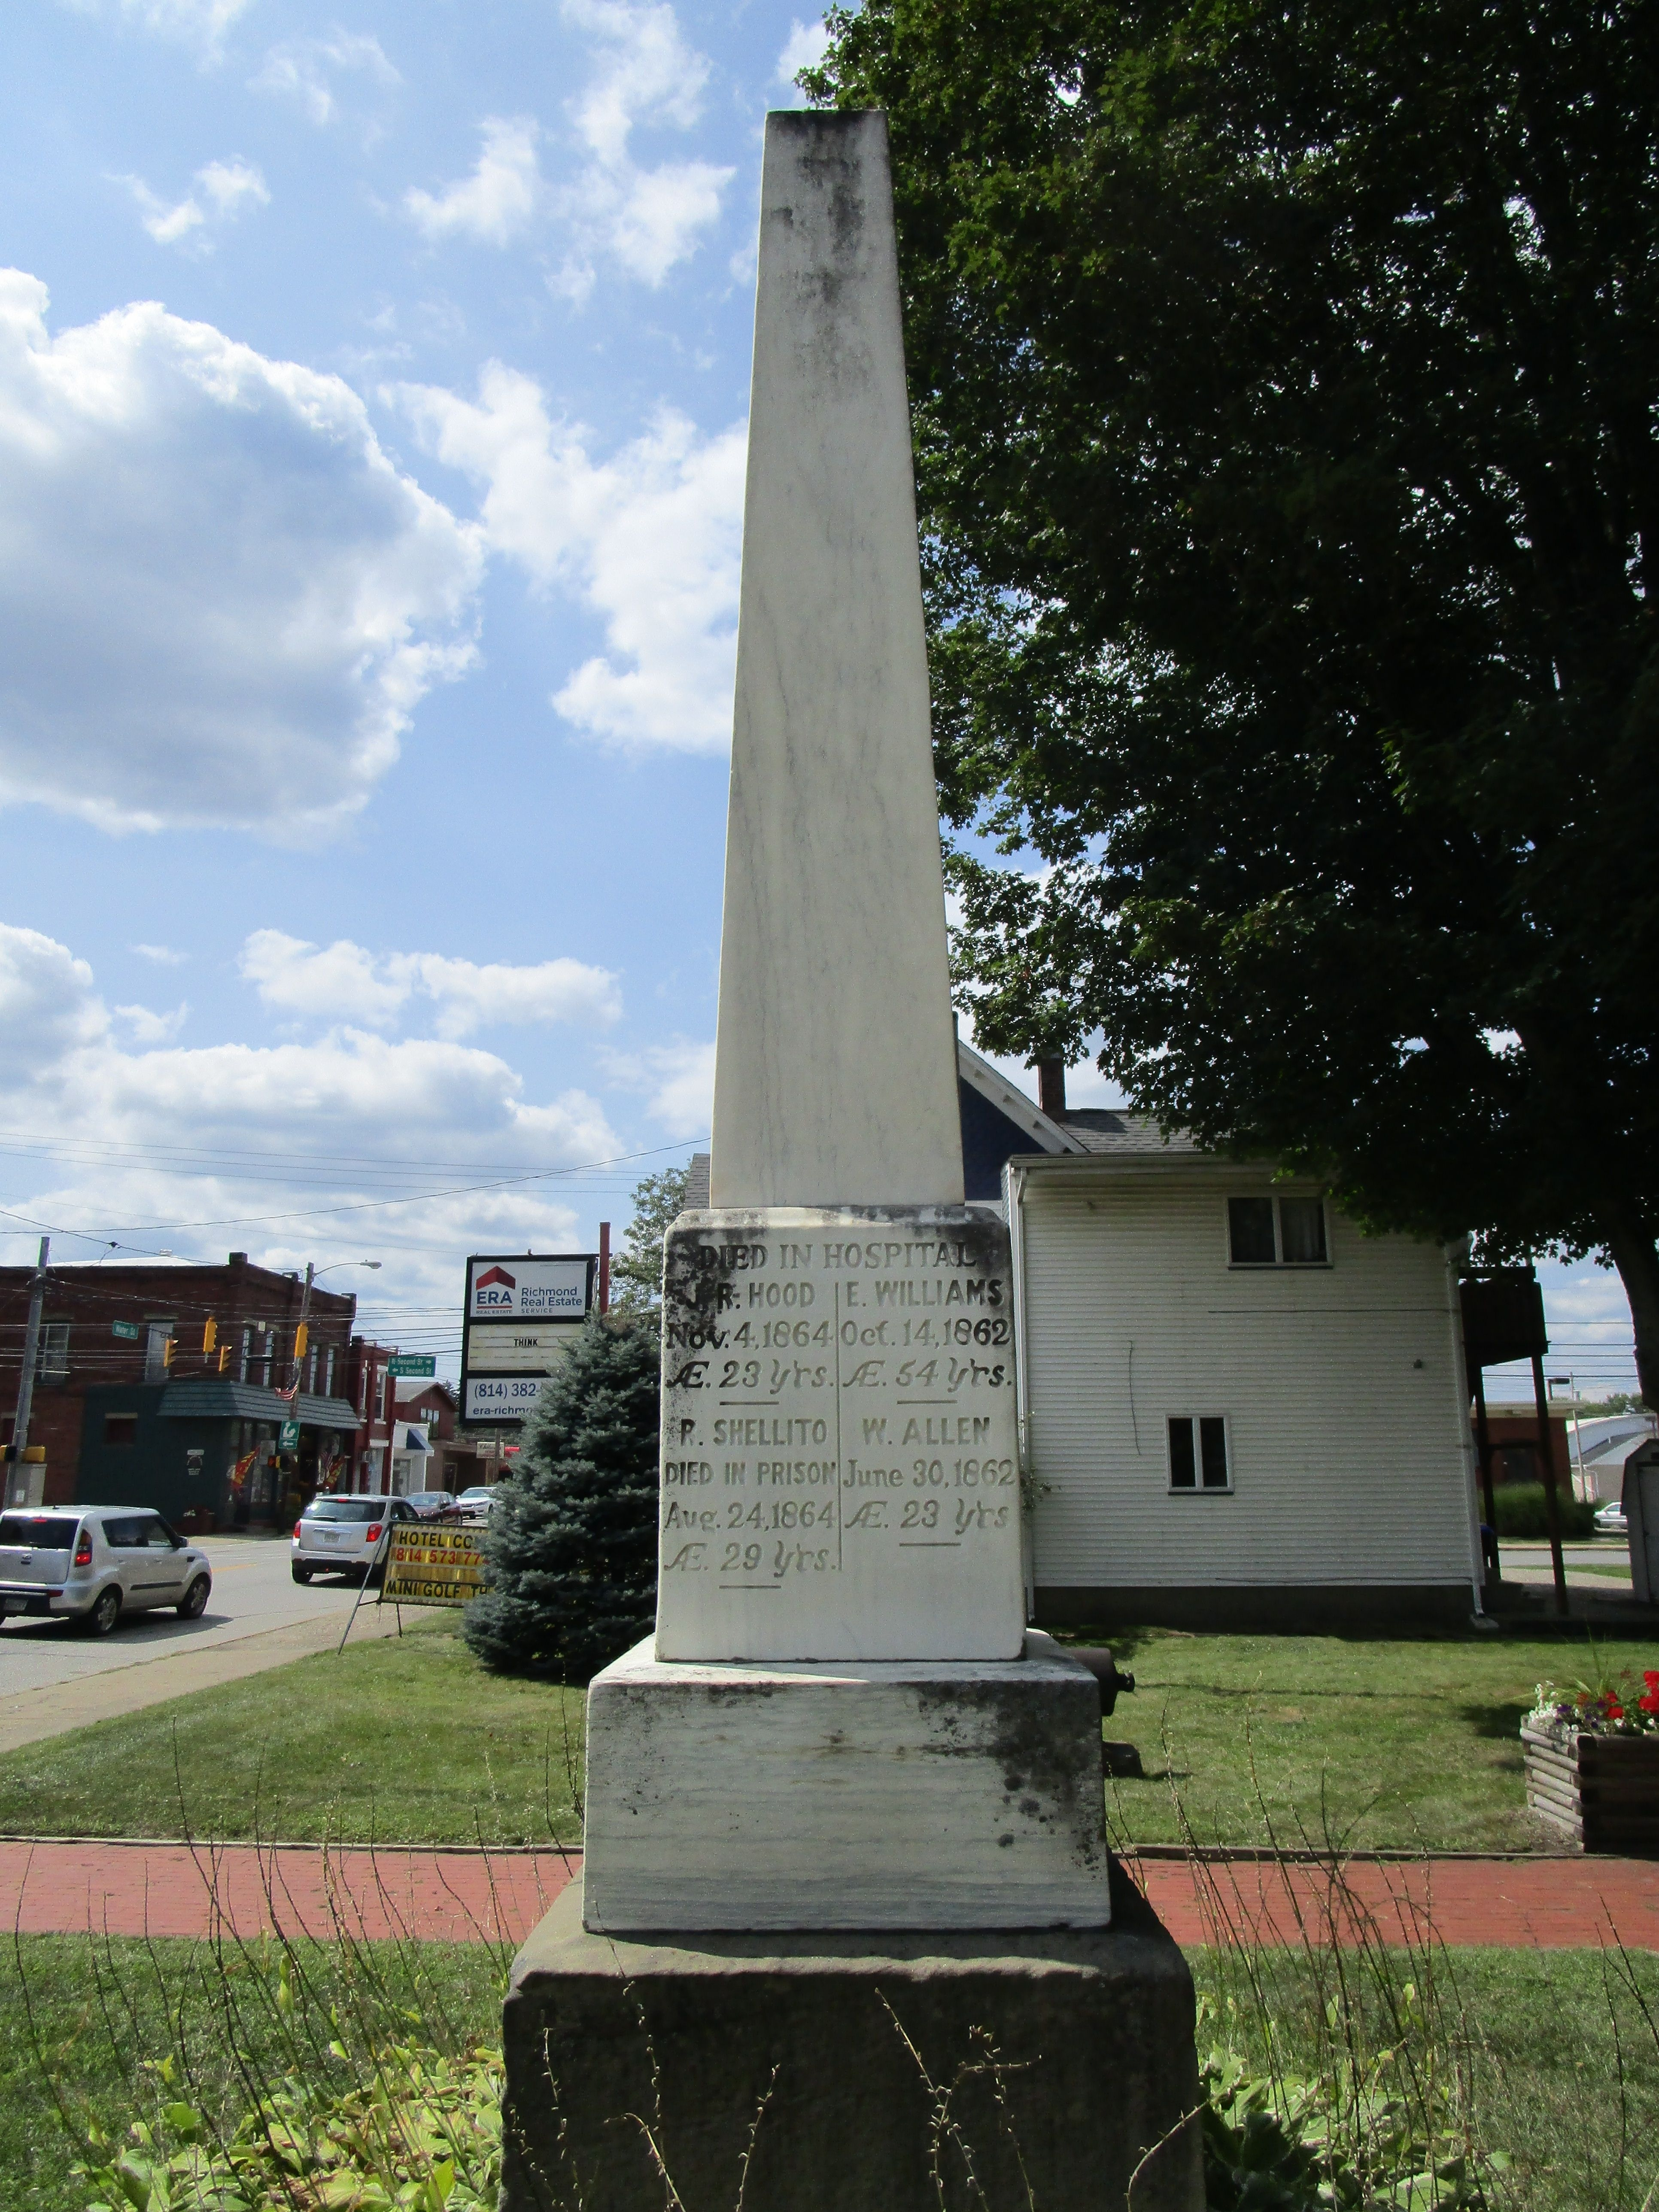 Evansburgh & Sadsbury Civil War Monument